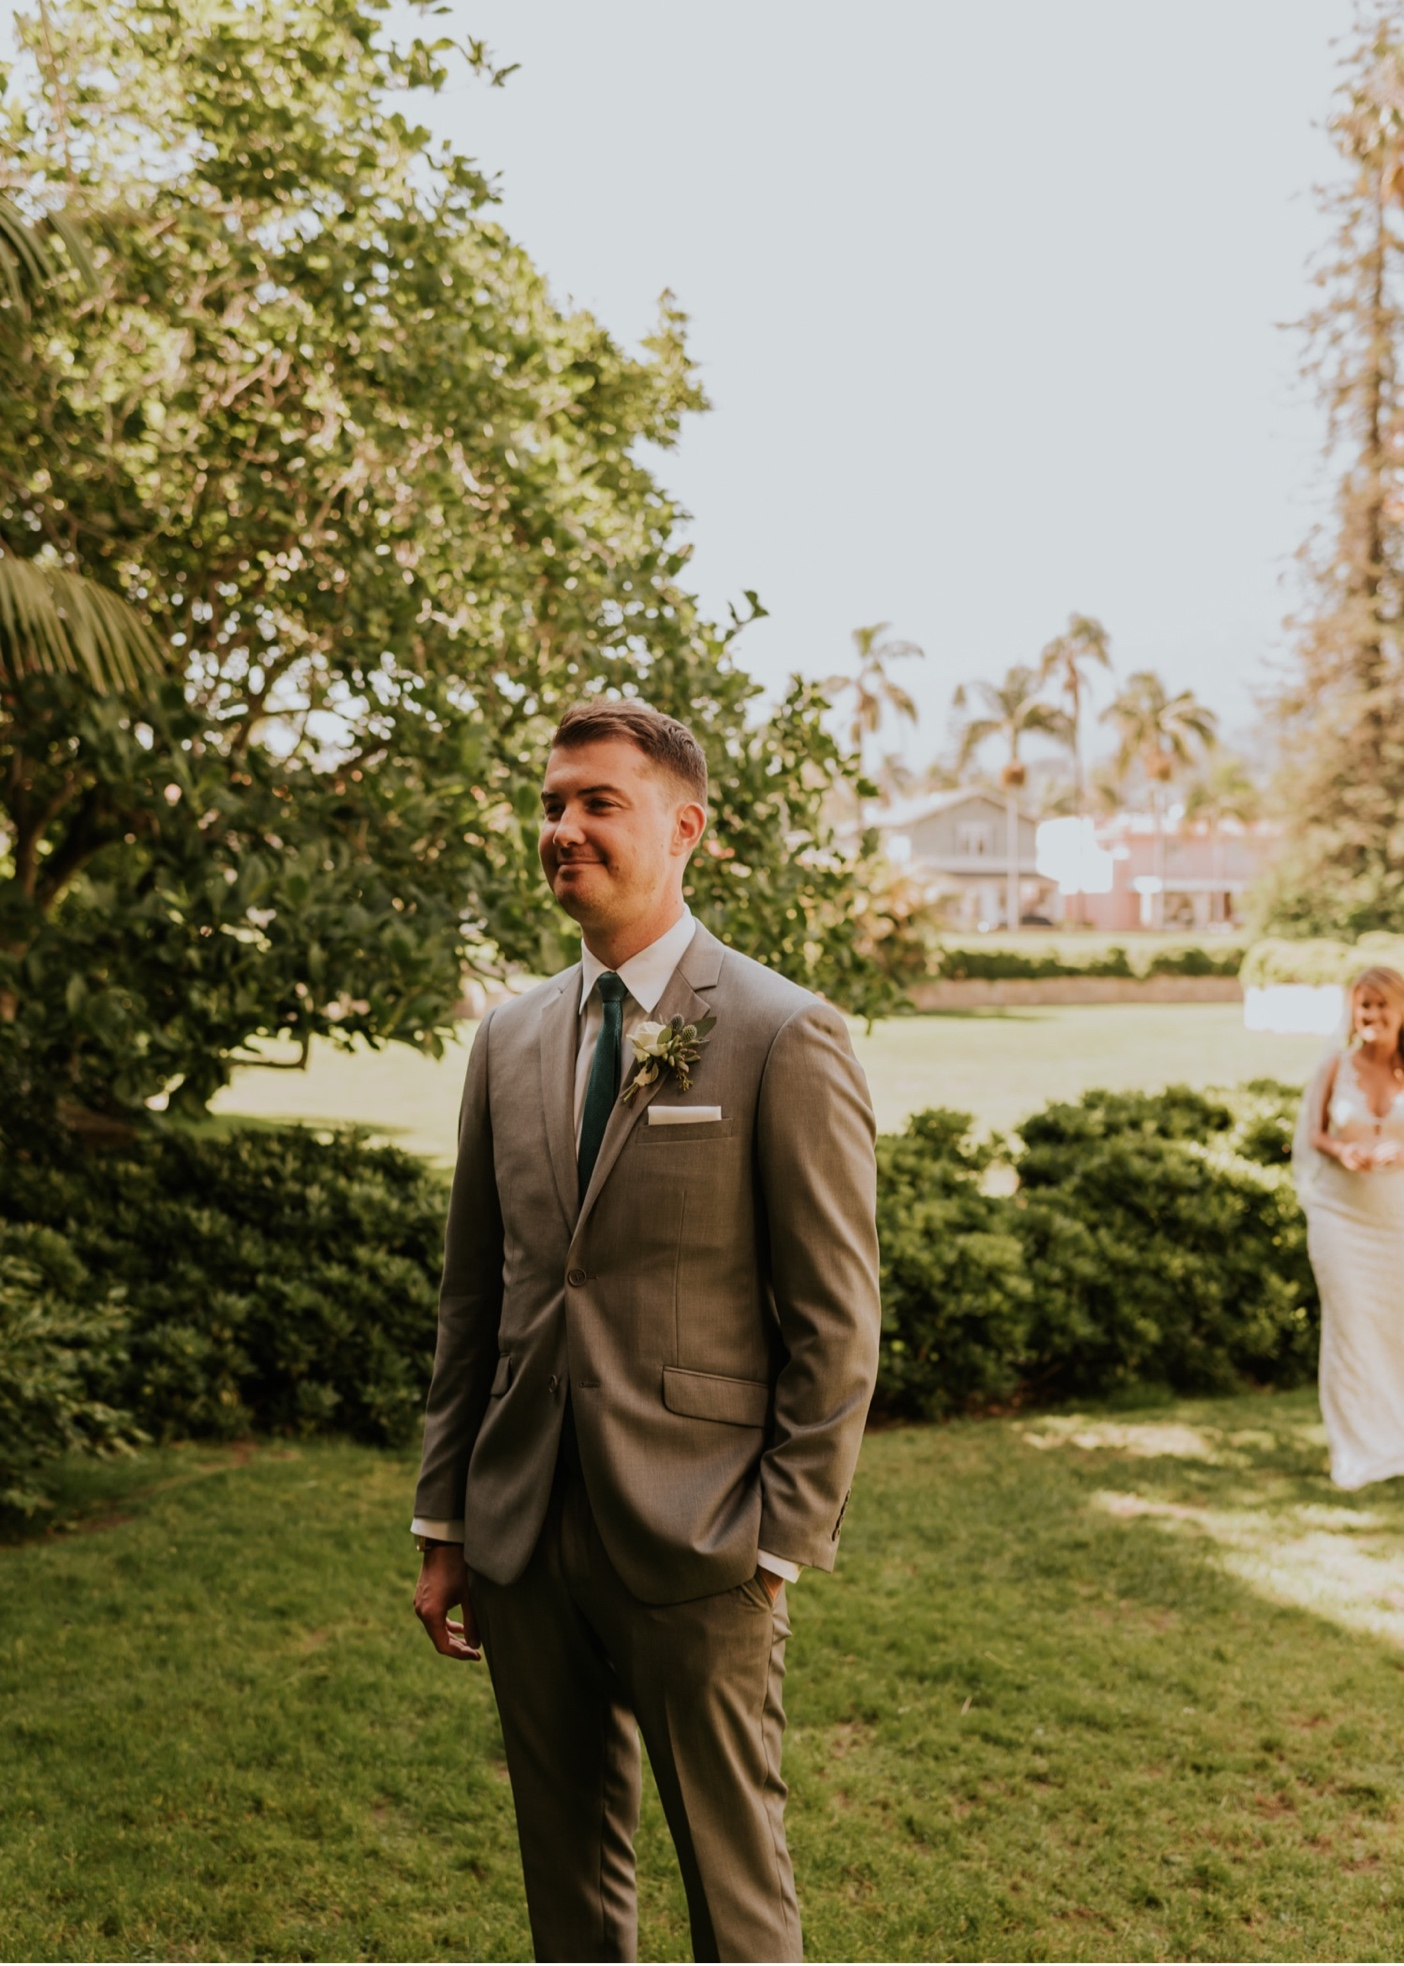 Bride and Groom first look on outdoor lawn. Santa Barbara Courthouse Wedding.